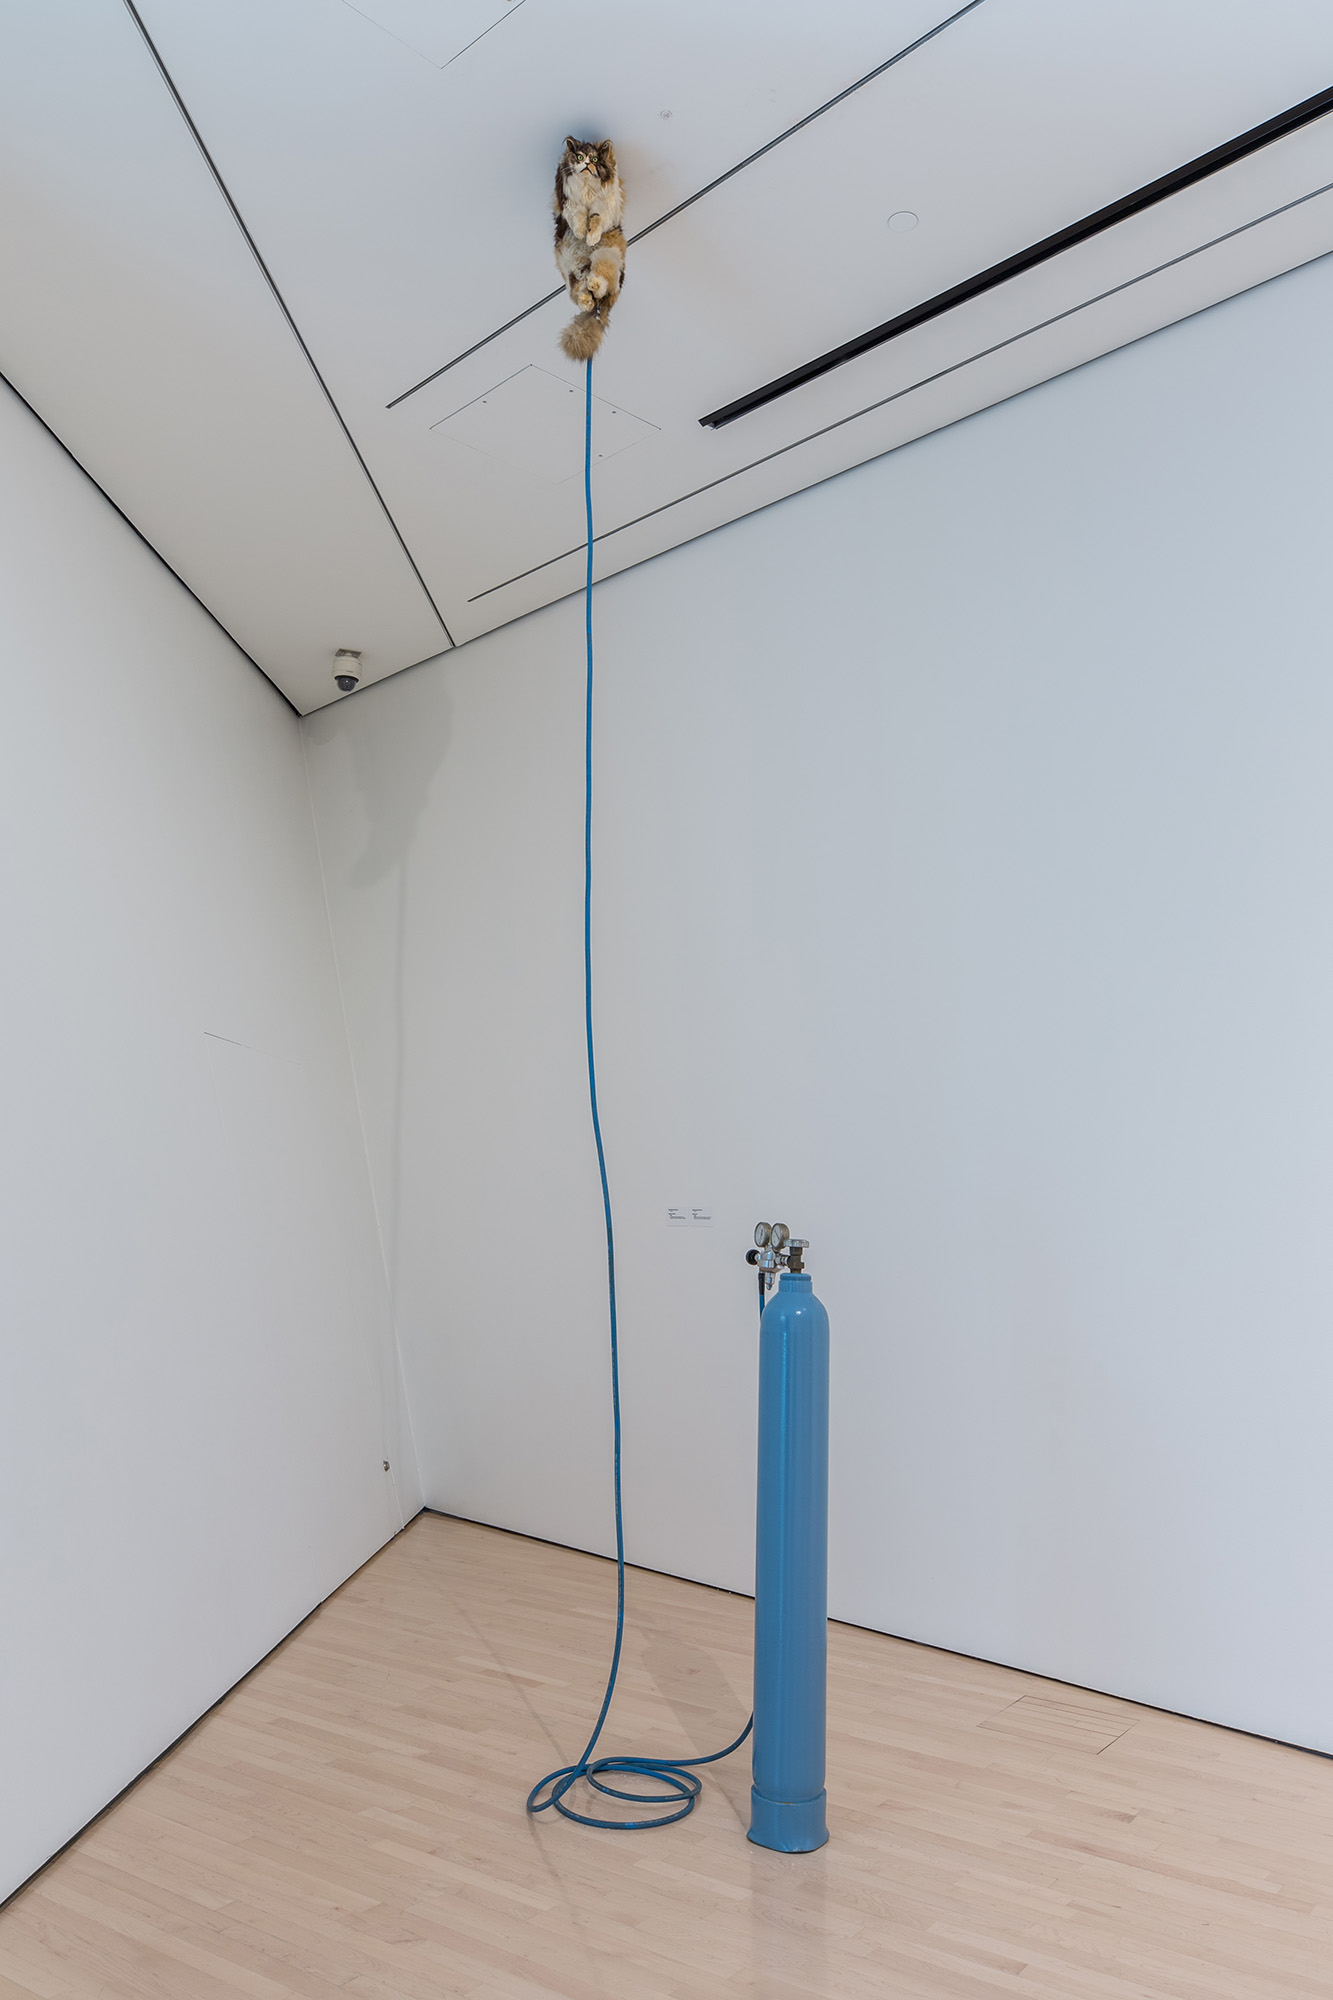 L to R: Ugo Rondinone, <i>​Clockwork for Oracles II</i>​, 2008, courtesy the artist and Gladstone Gallery, New York and Brussels; Jonathan Monk, ​<i>Second Hand Daily Exchange</i>​, 2006, courtesy the artist and Lisson Gallery, New York and London; Wolf Vostell, ​<i>Betonbuch​ (Concrete Book)</i>, 1971, University of Chicago Library, Special Collections Research Center; installation view at the MSU Broad, 2017. Photo: MSU Broad